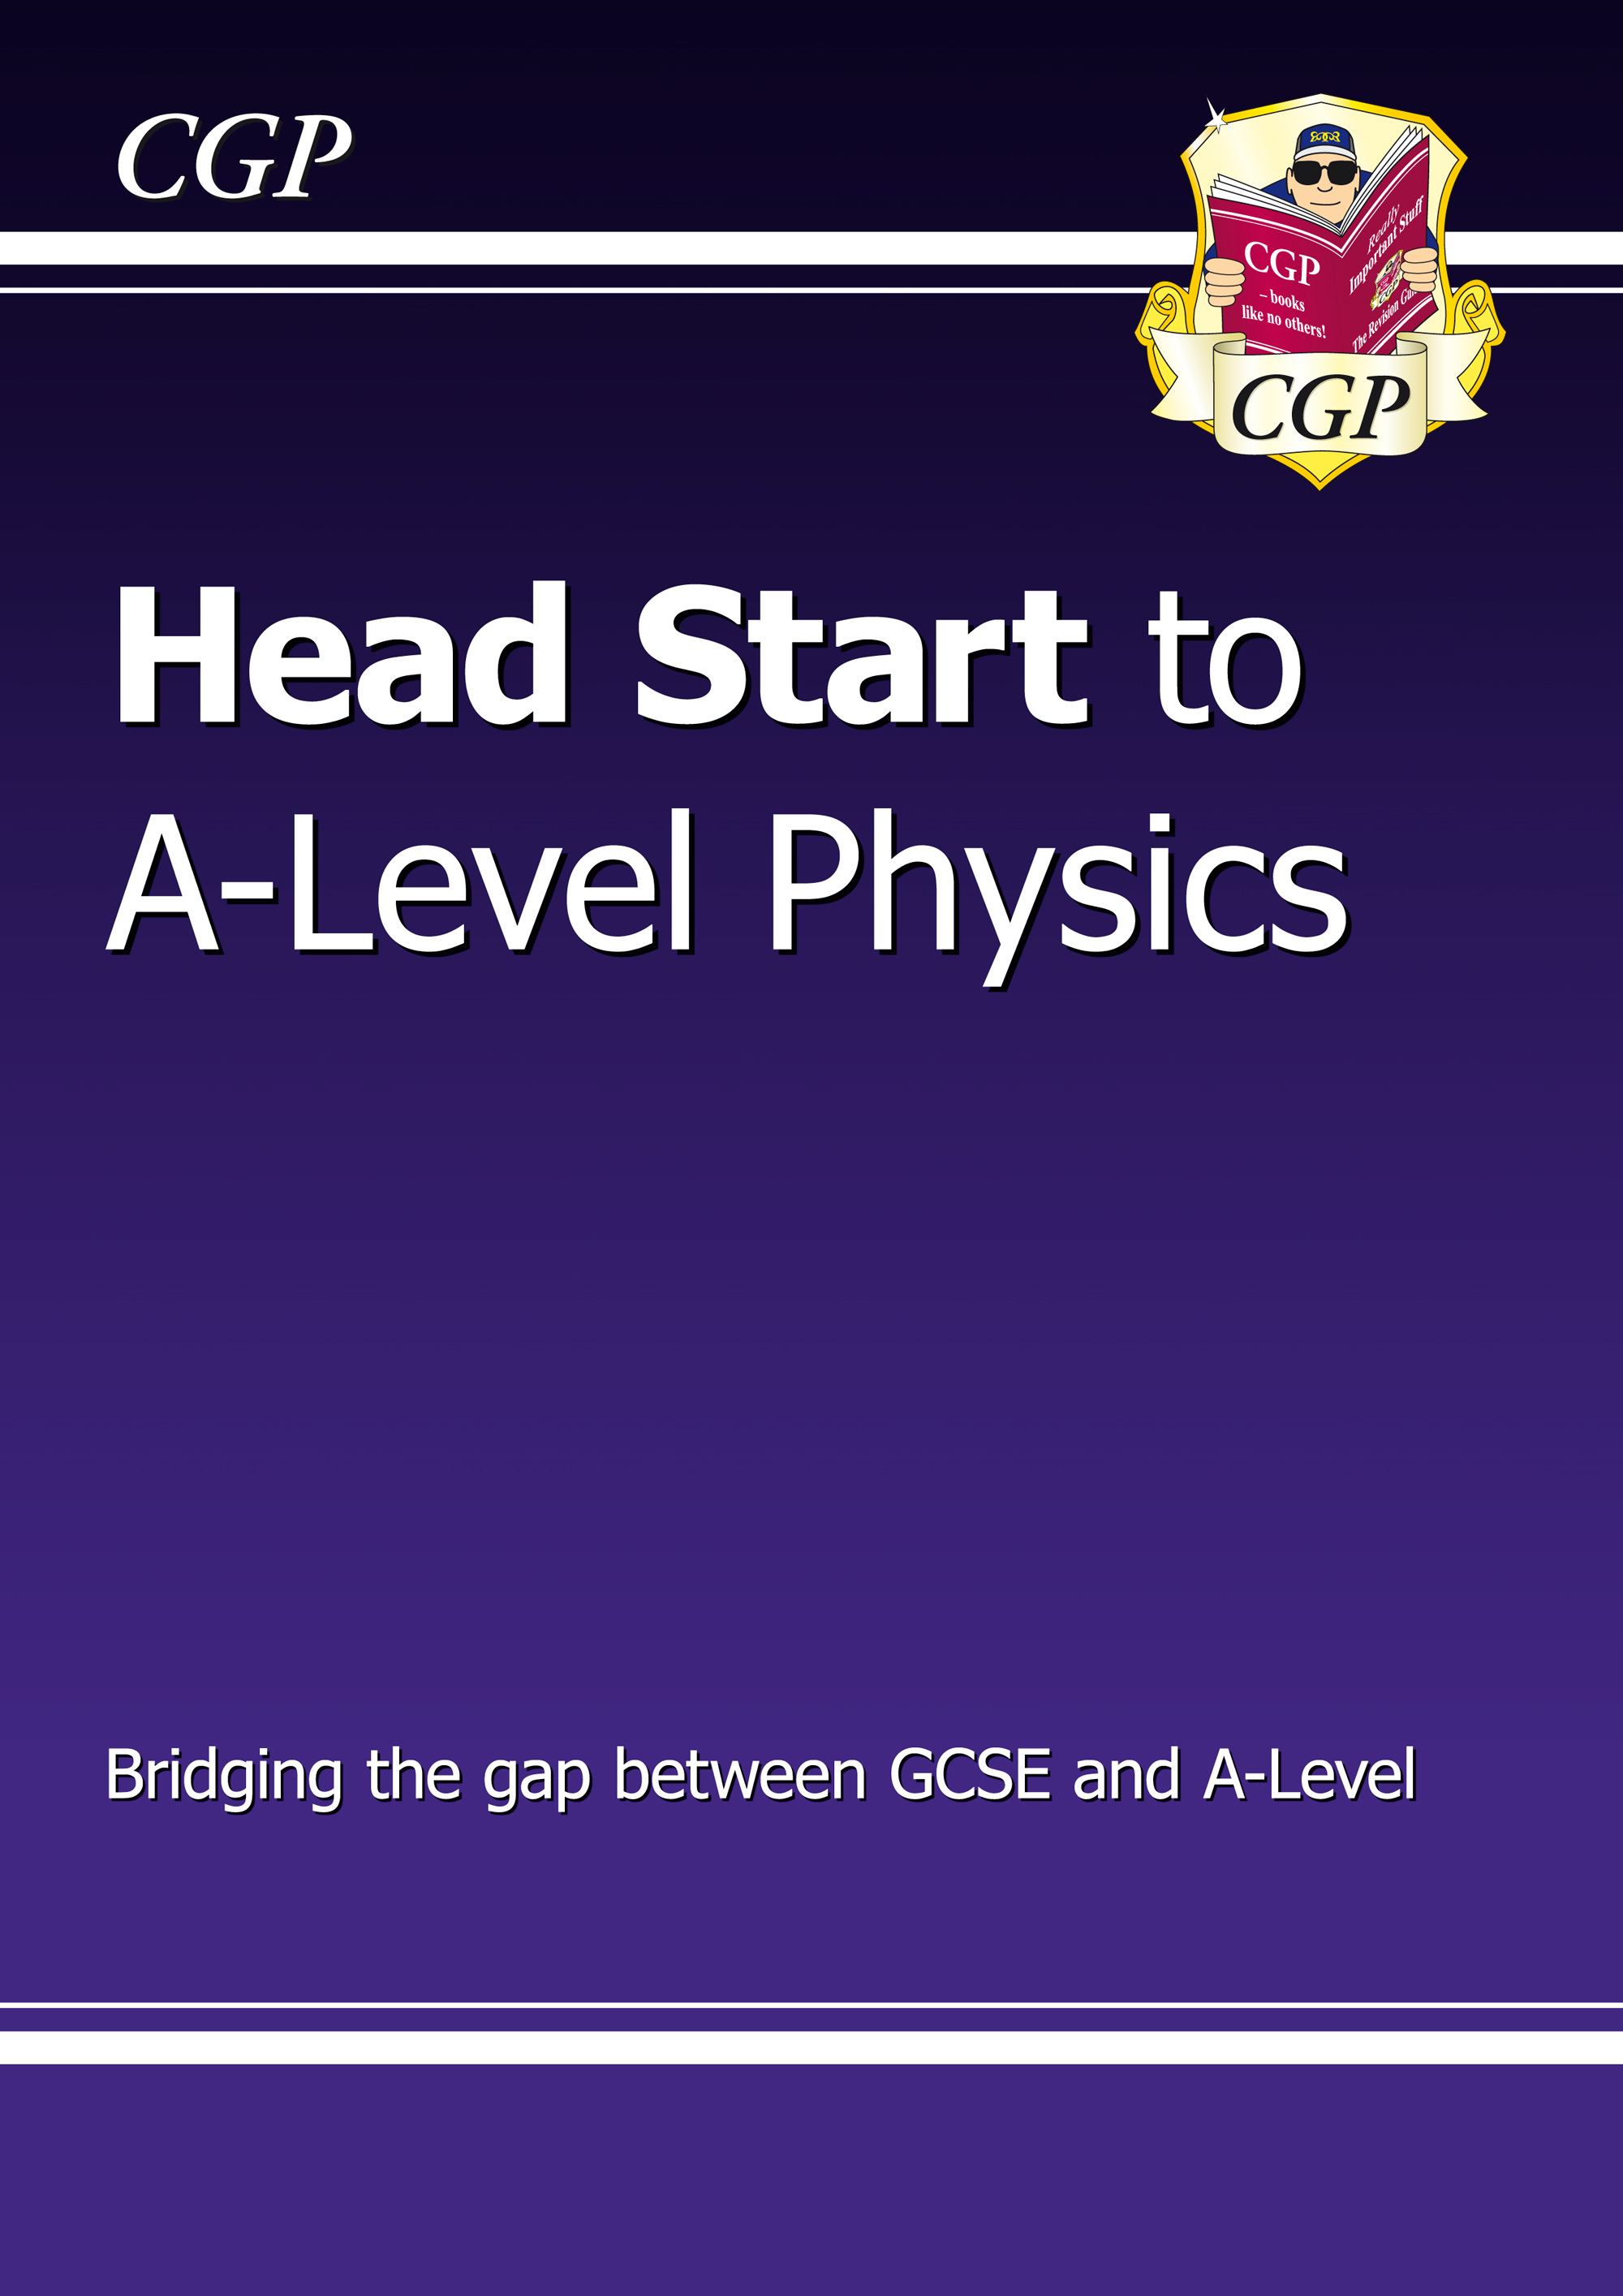 PBR71 - Head Start to A-level Physics